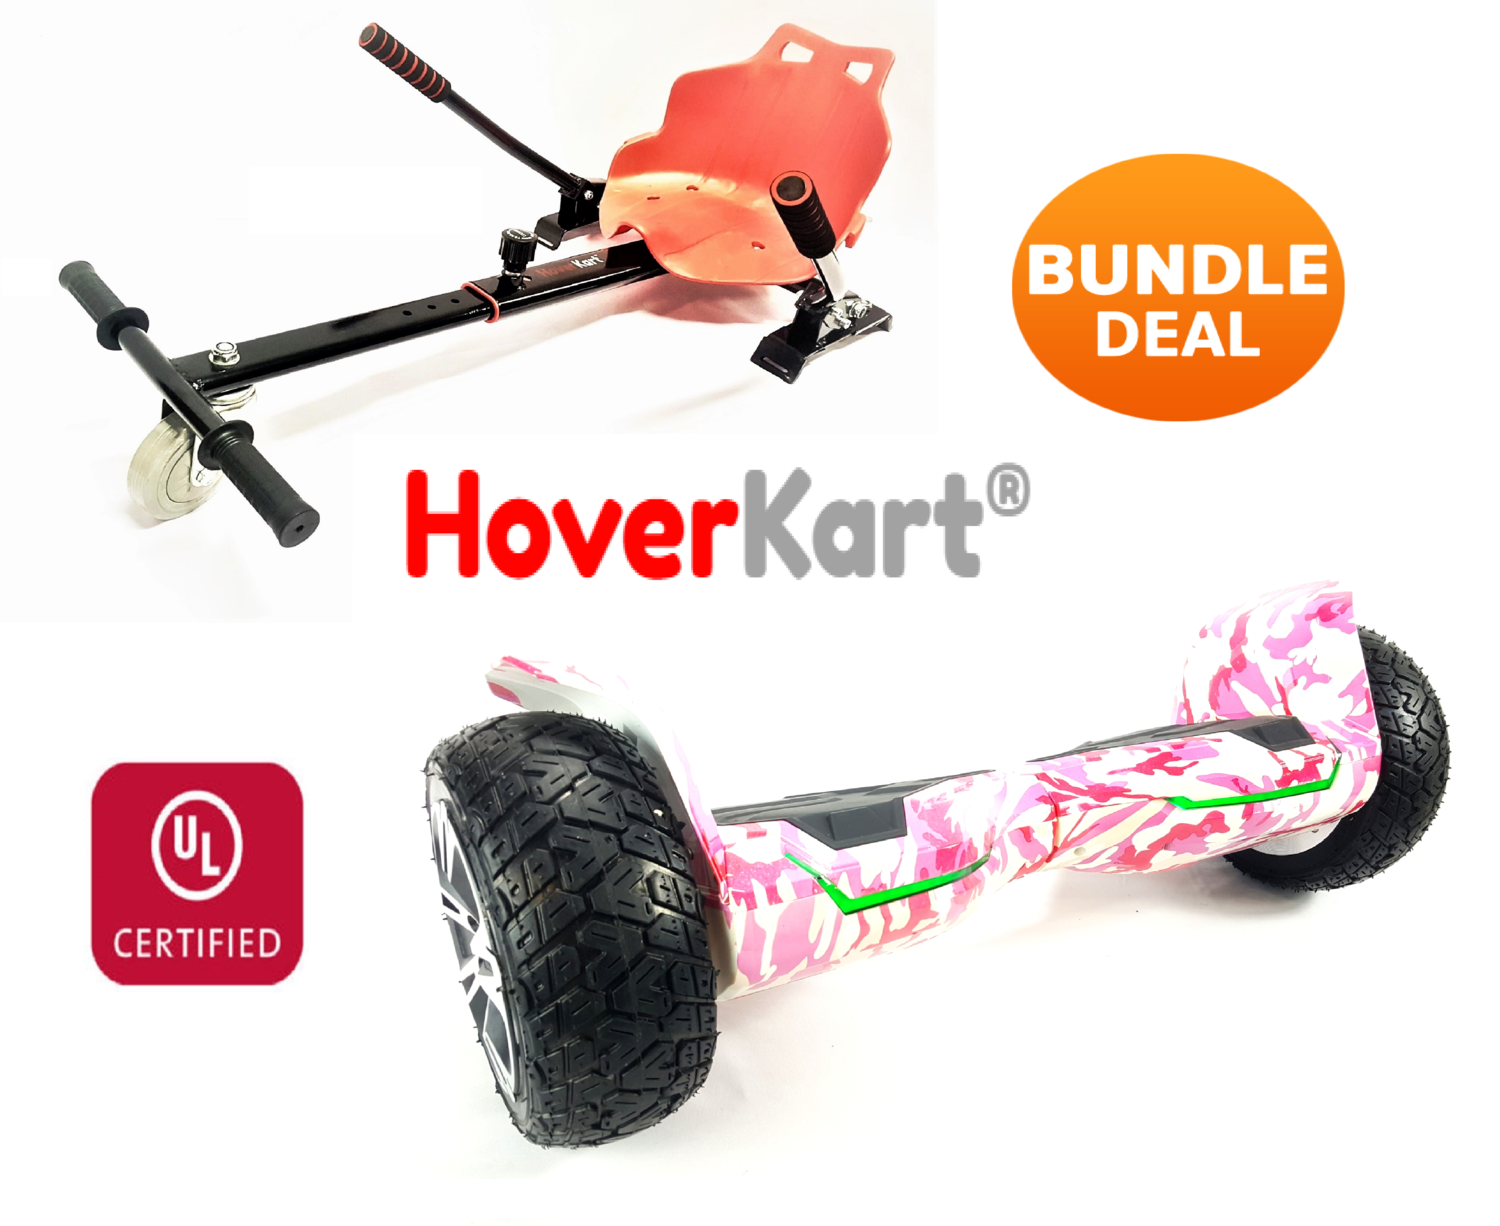 """PINK CAMO G2 Warrior Pro 8.5"""" Hoverboard with Red Seat Hover GoKart HK5 Bundle"""